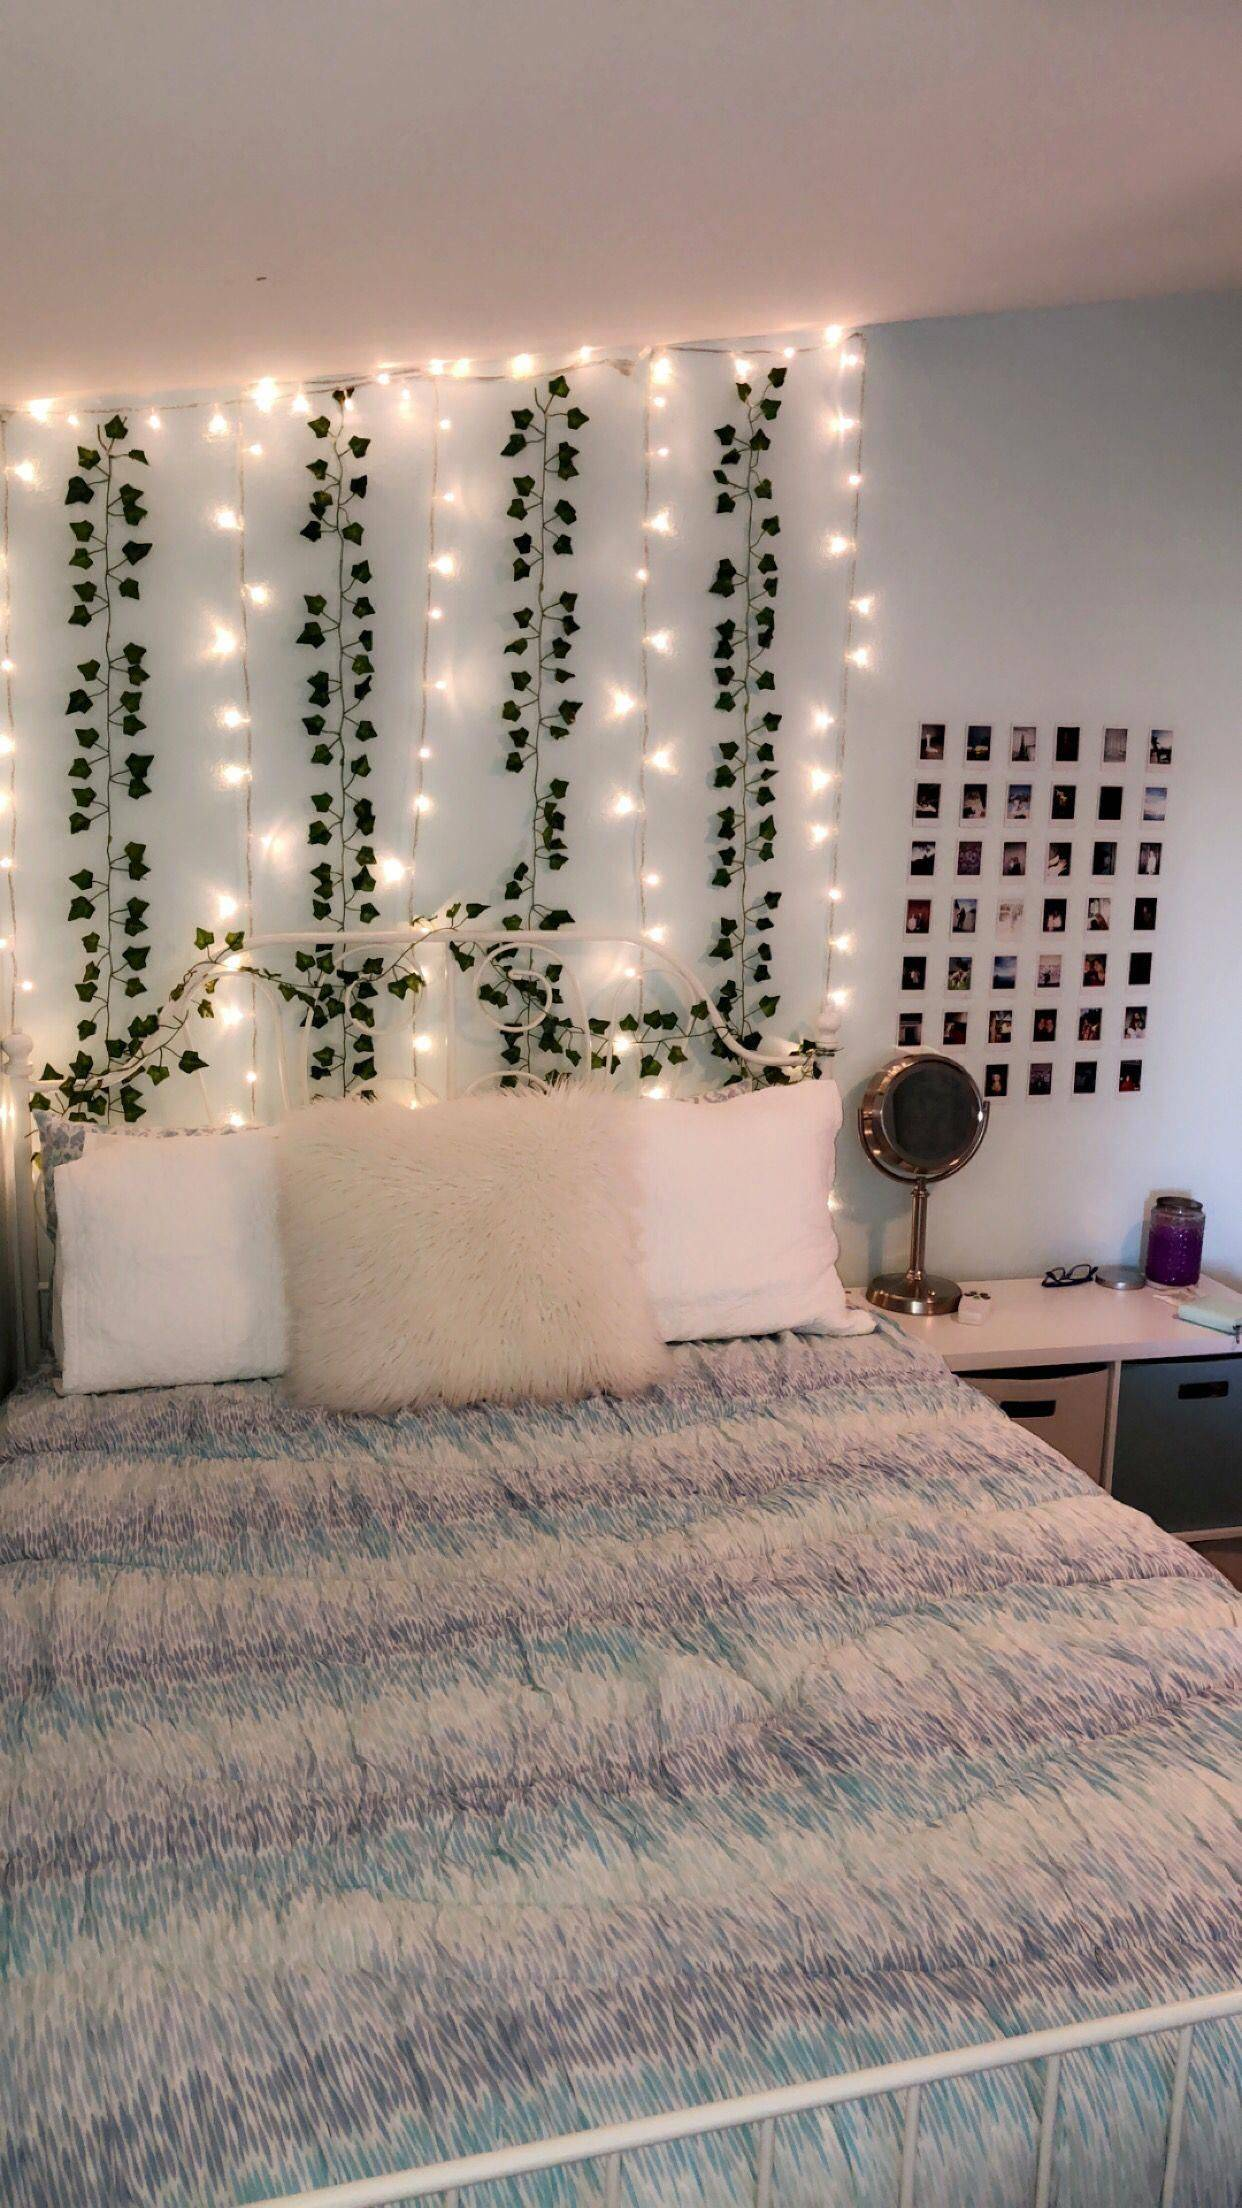 Tumblr Rooms 2019 Luxury Pin On Dorm Room